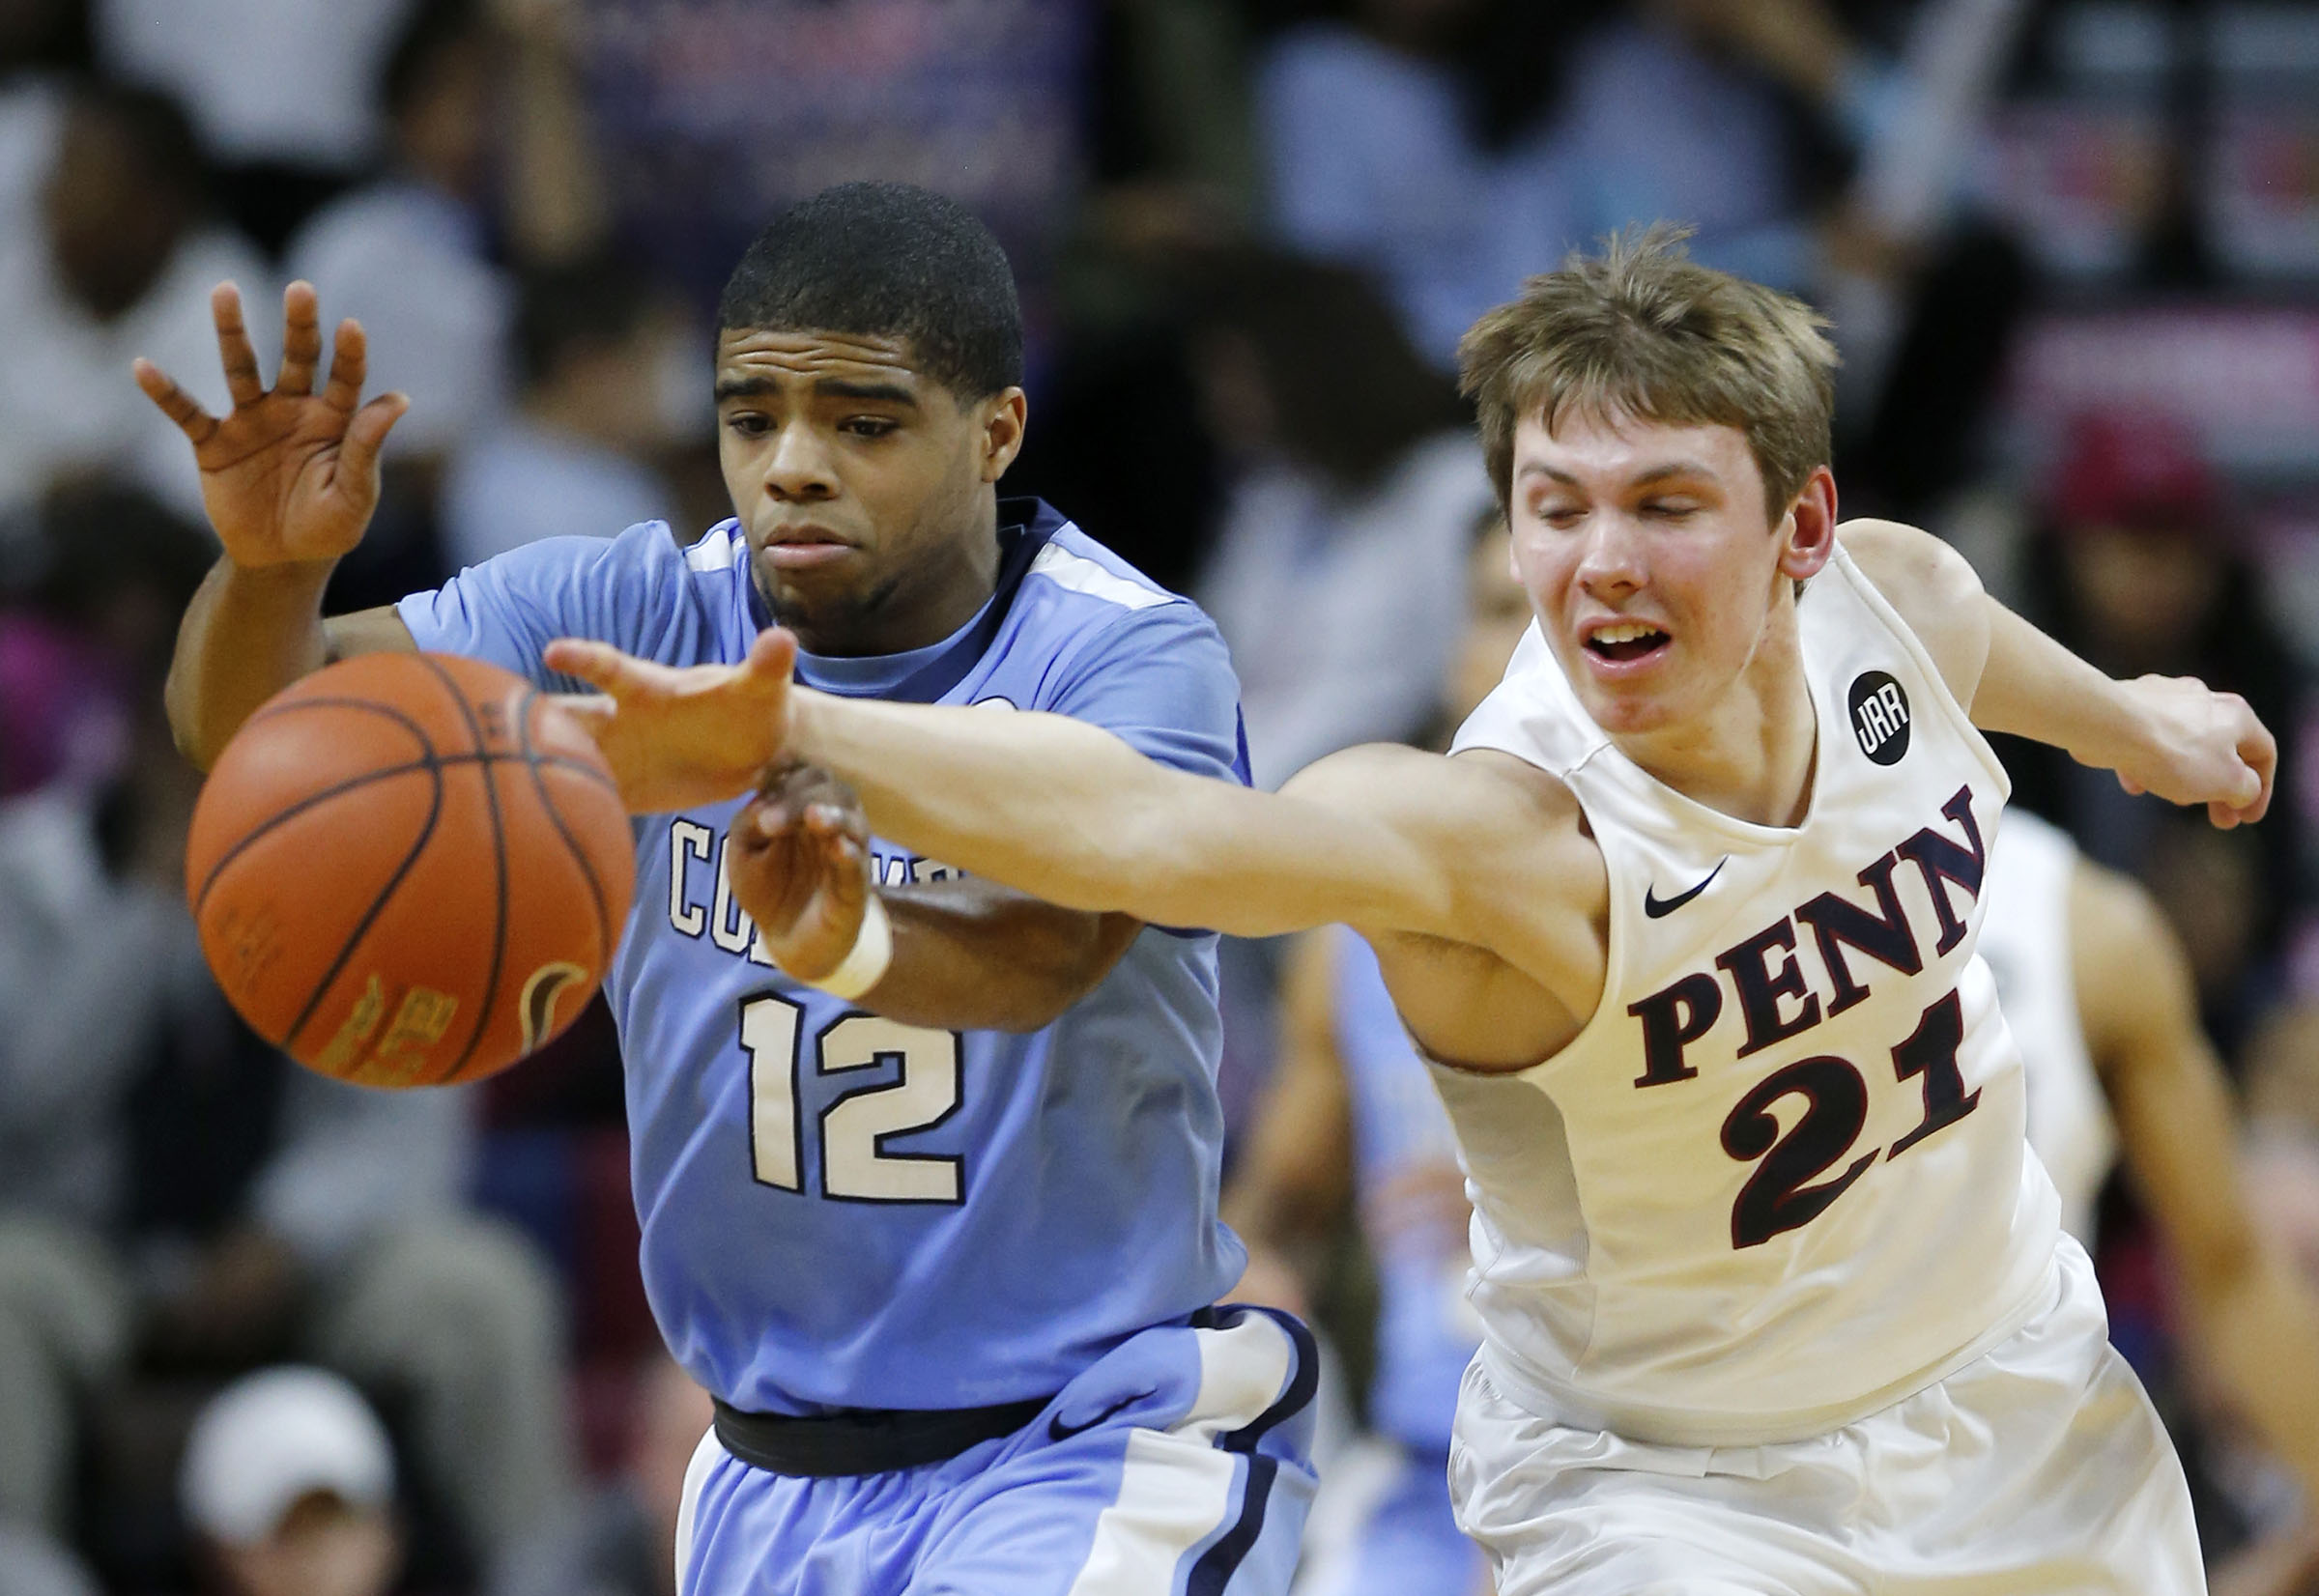 Penn guard Ryan Betley reaches for a loose ball with Columbia guard Mike Smith during a February game.